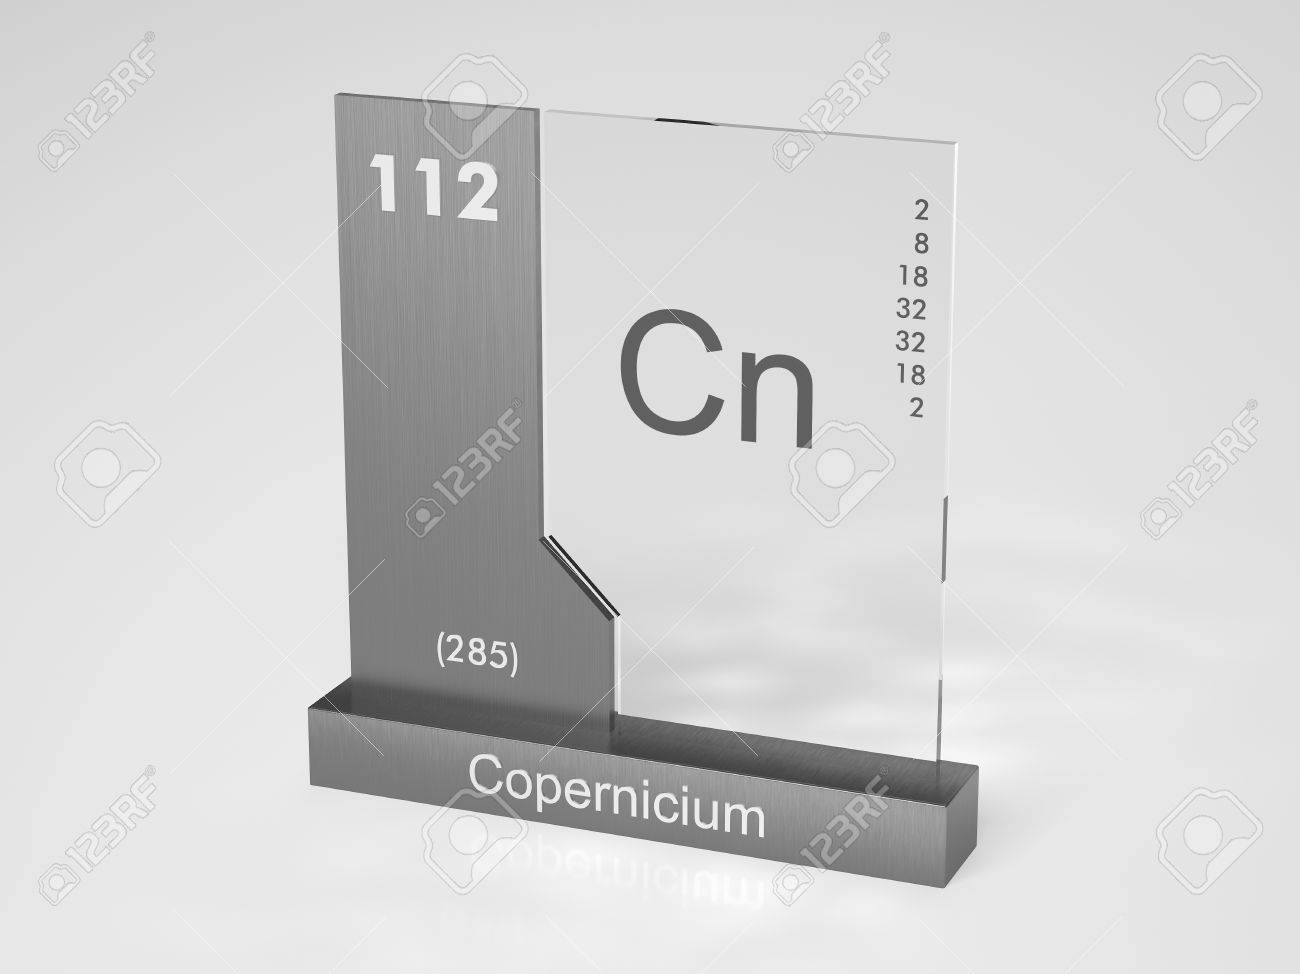 14th element in periodic table image collections periodic table 14th element in periodic table choice image periodic table images cn periodic table gallery periodic table gamestrikefo Image collections